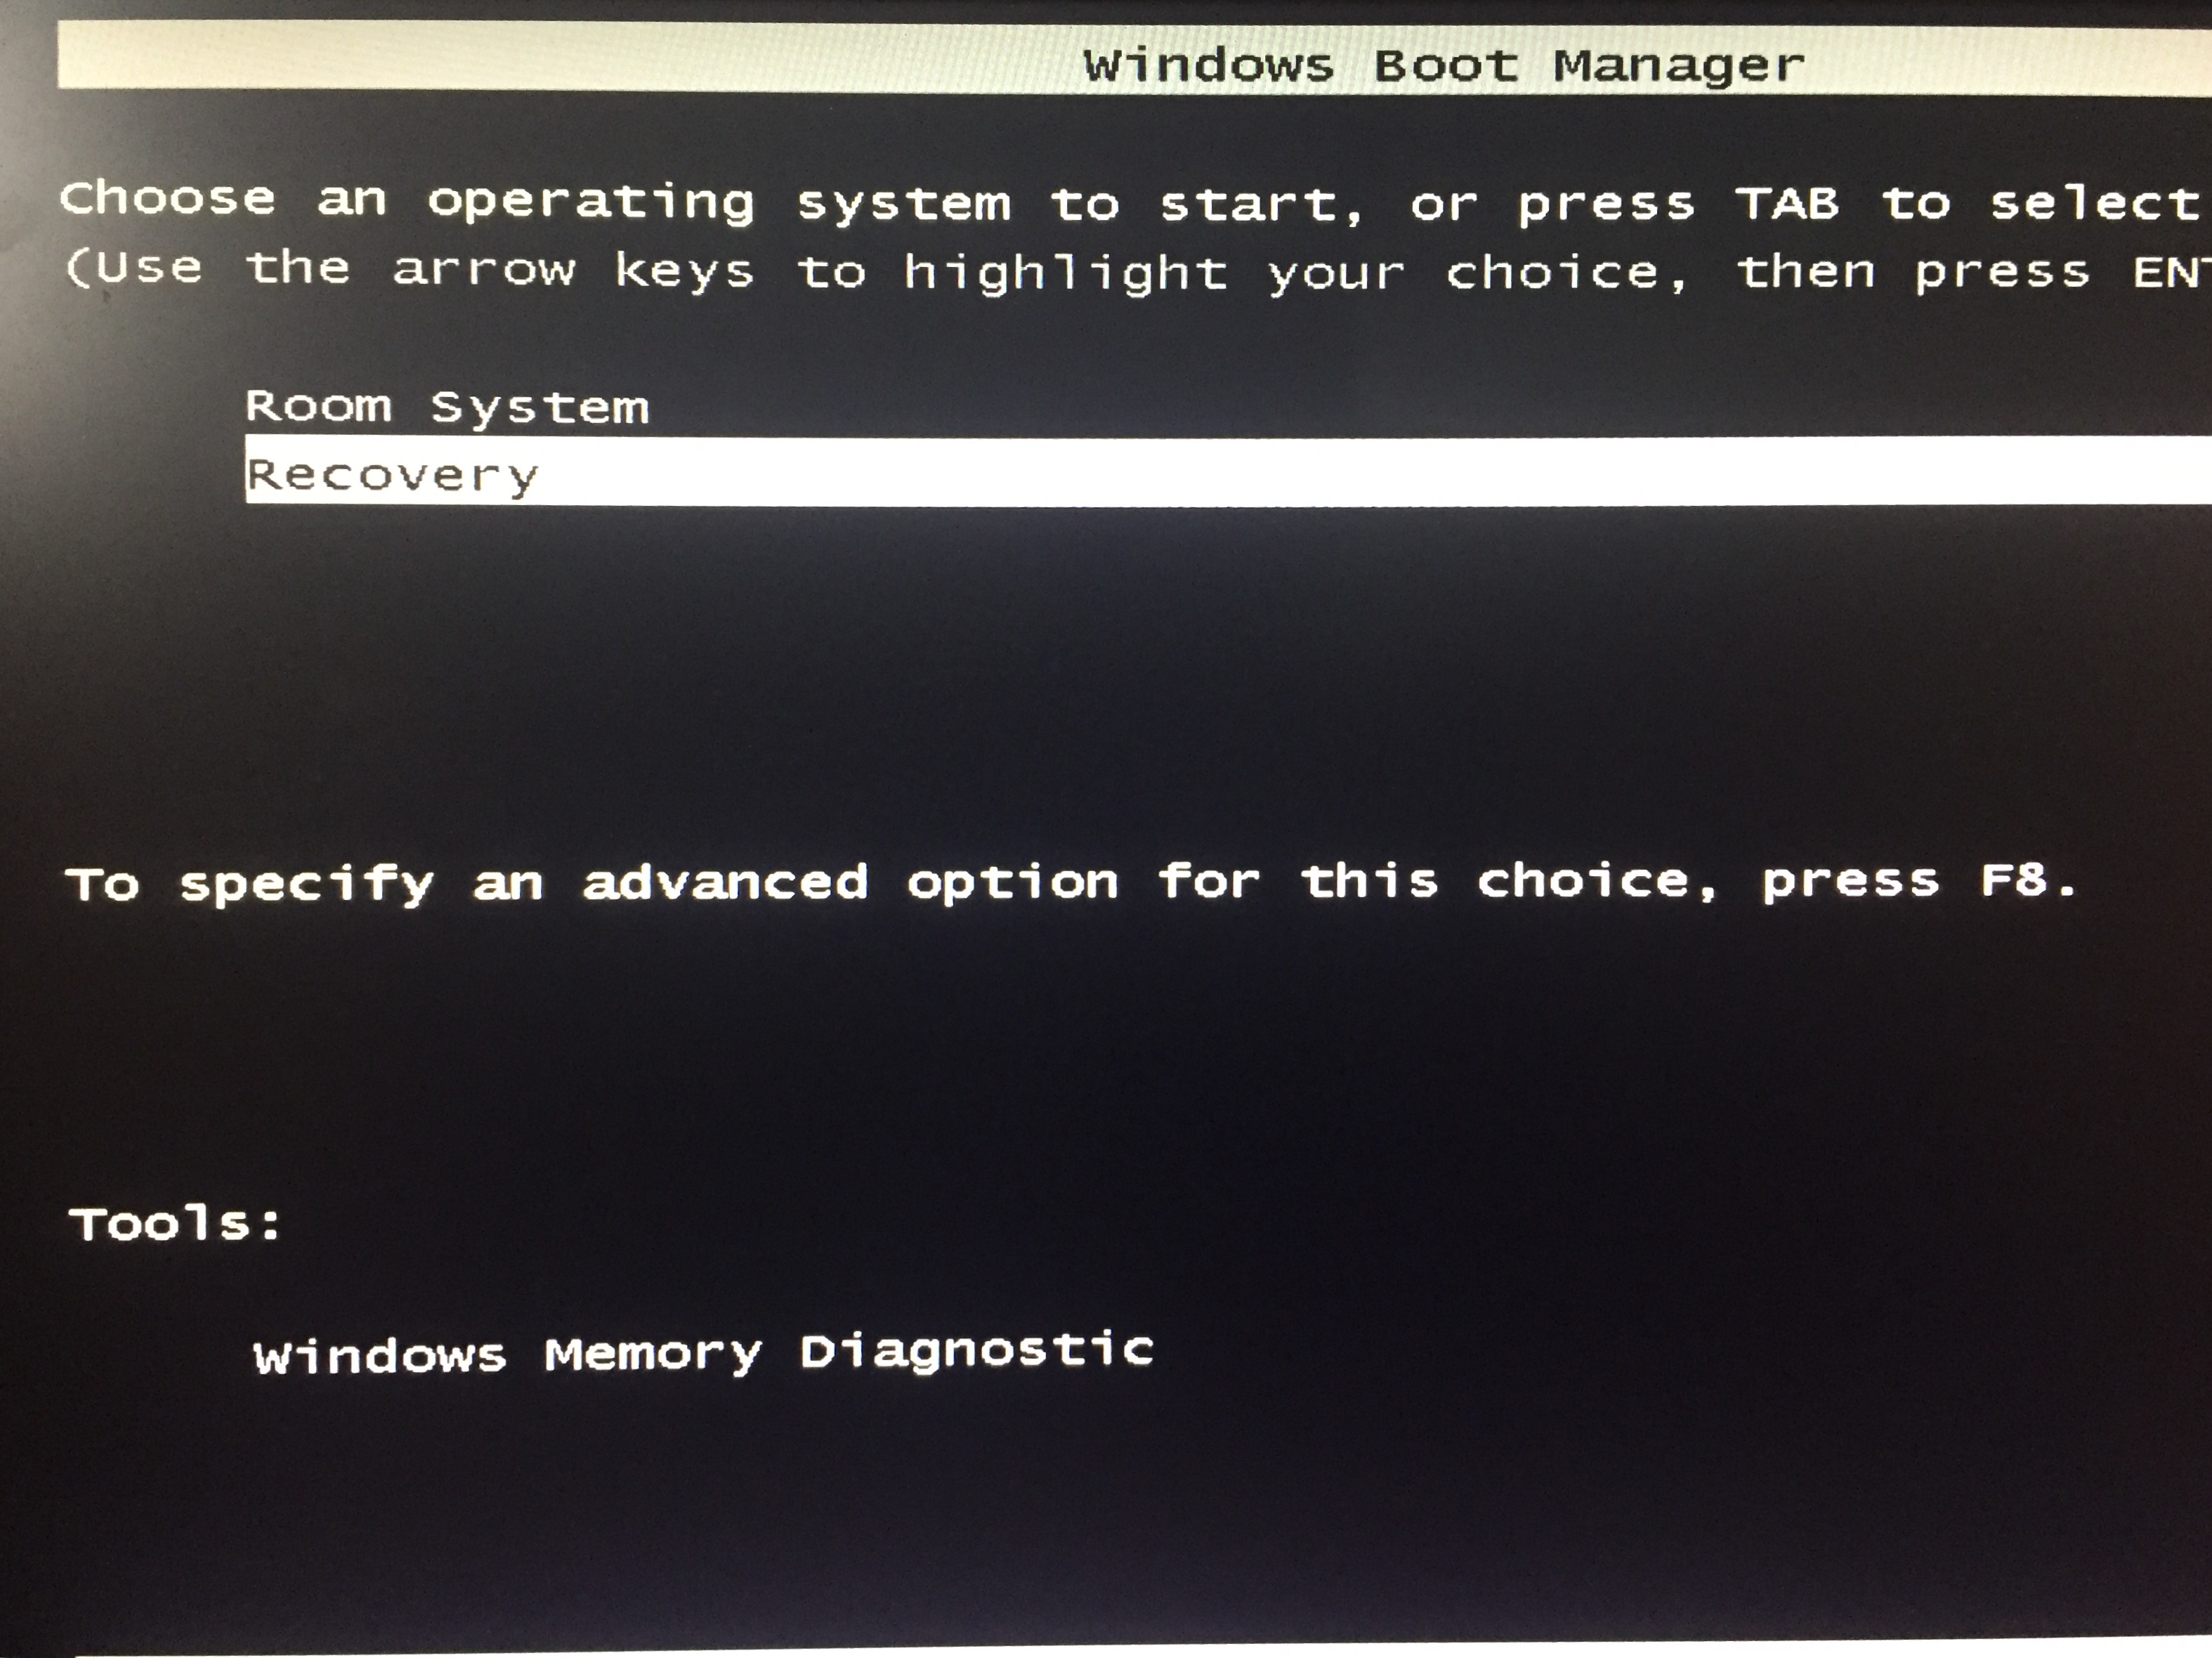 Windows_Boot_Manager.jpg